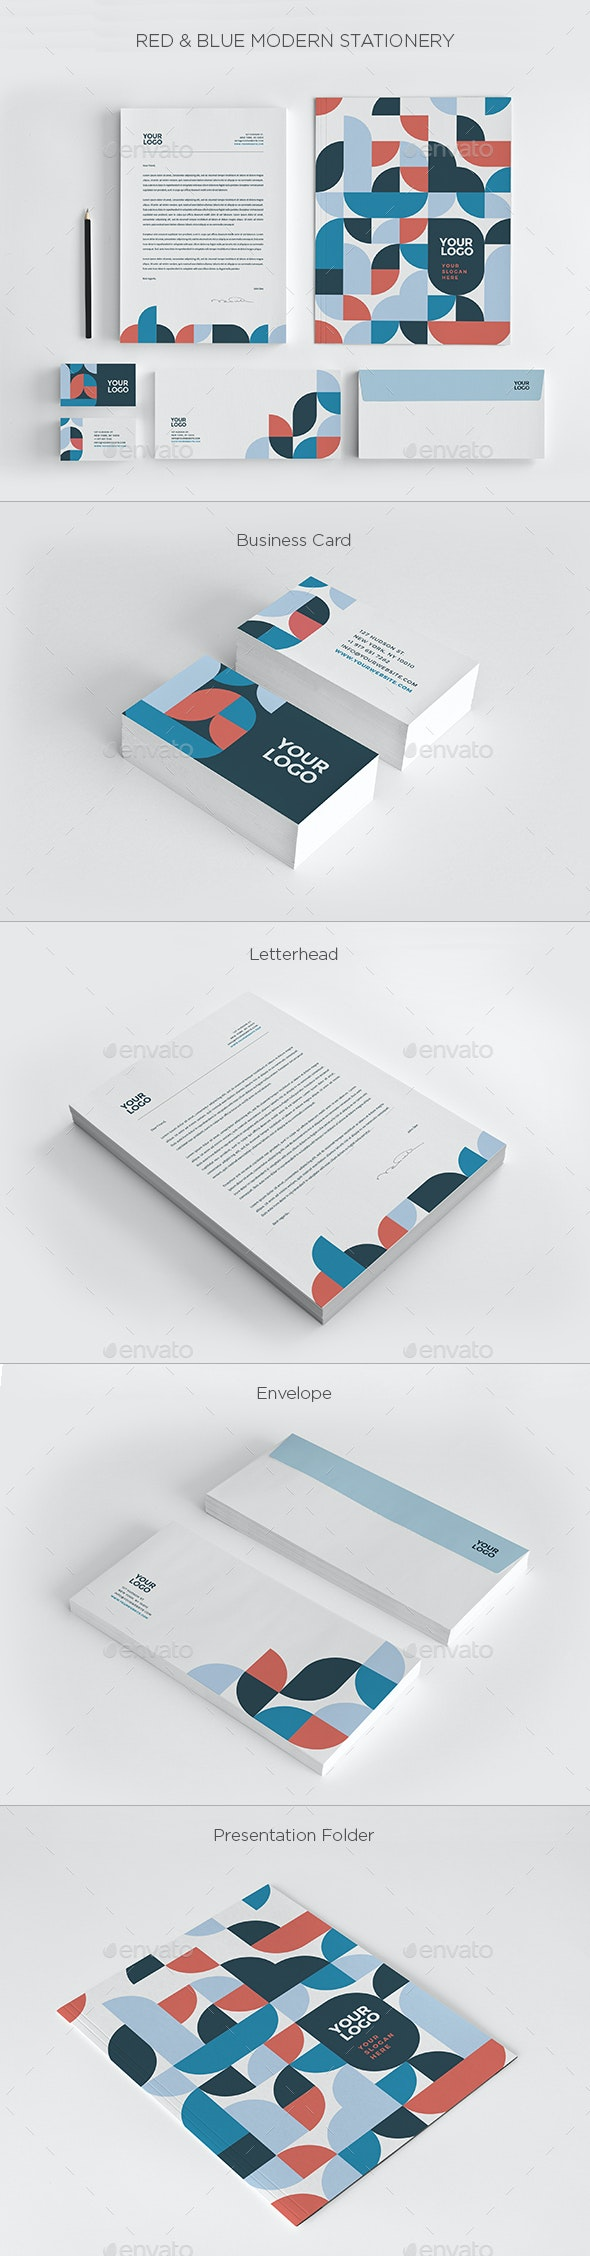 Red & Blue Modern Stationery - Stationery Print Templates